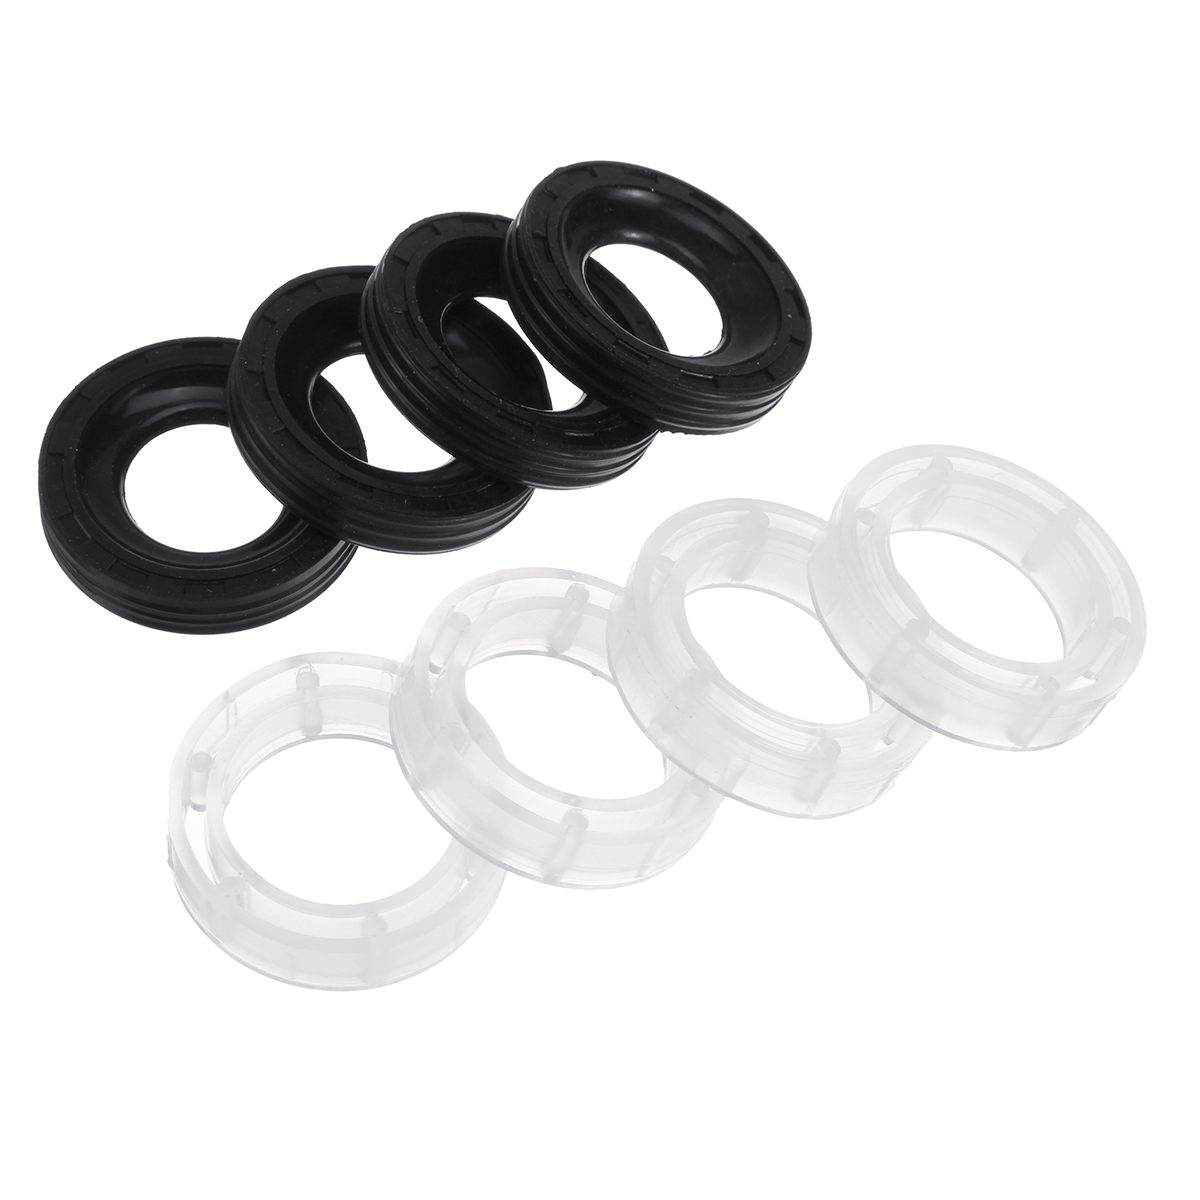 Fuel Injector Seal Washer O-Ring Kit for Peugeot Partner Tepee 1.6 HDI 2004 on